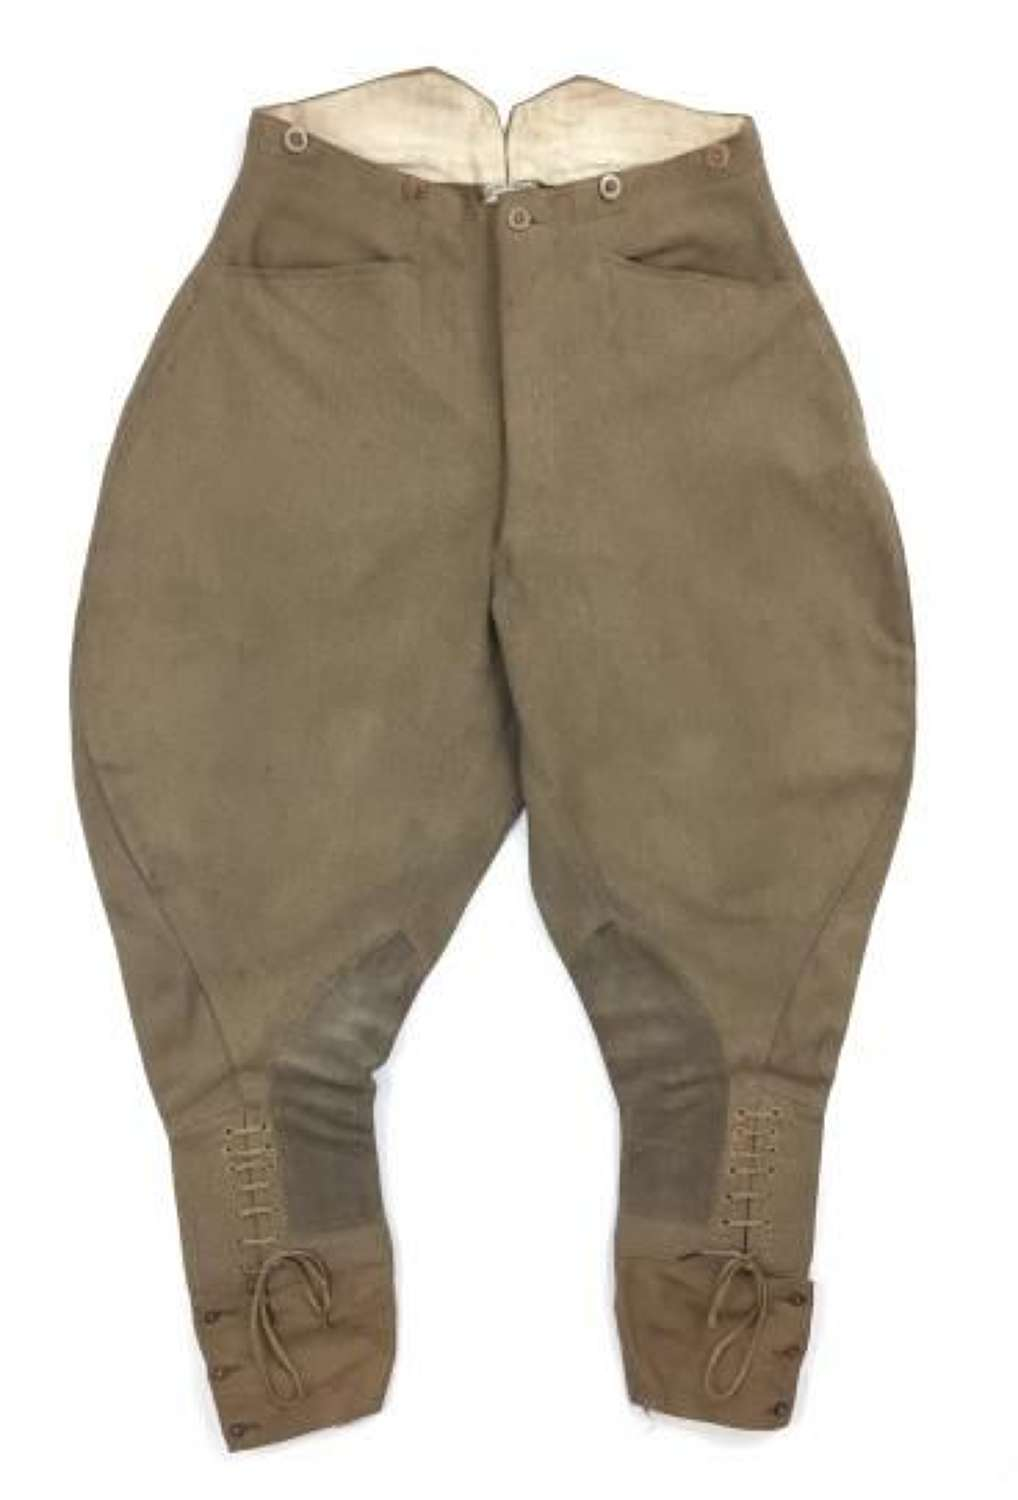 Original 1915 Dated British Army Officers Breeches